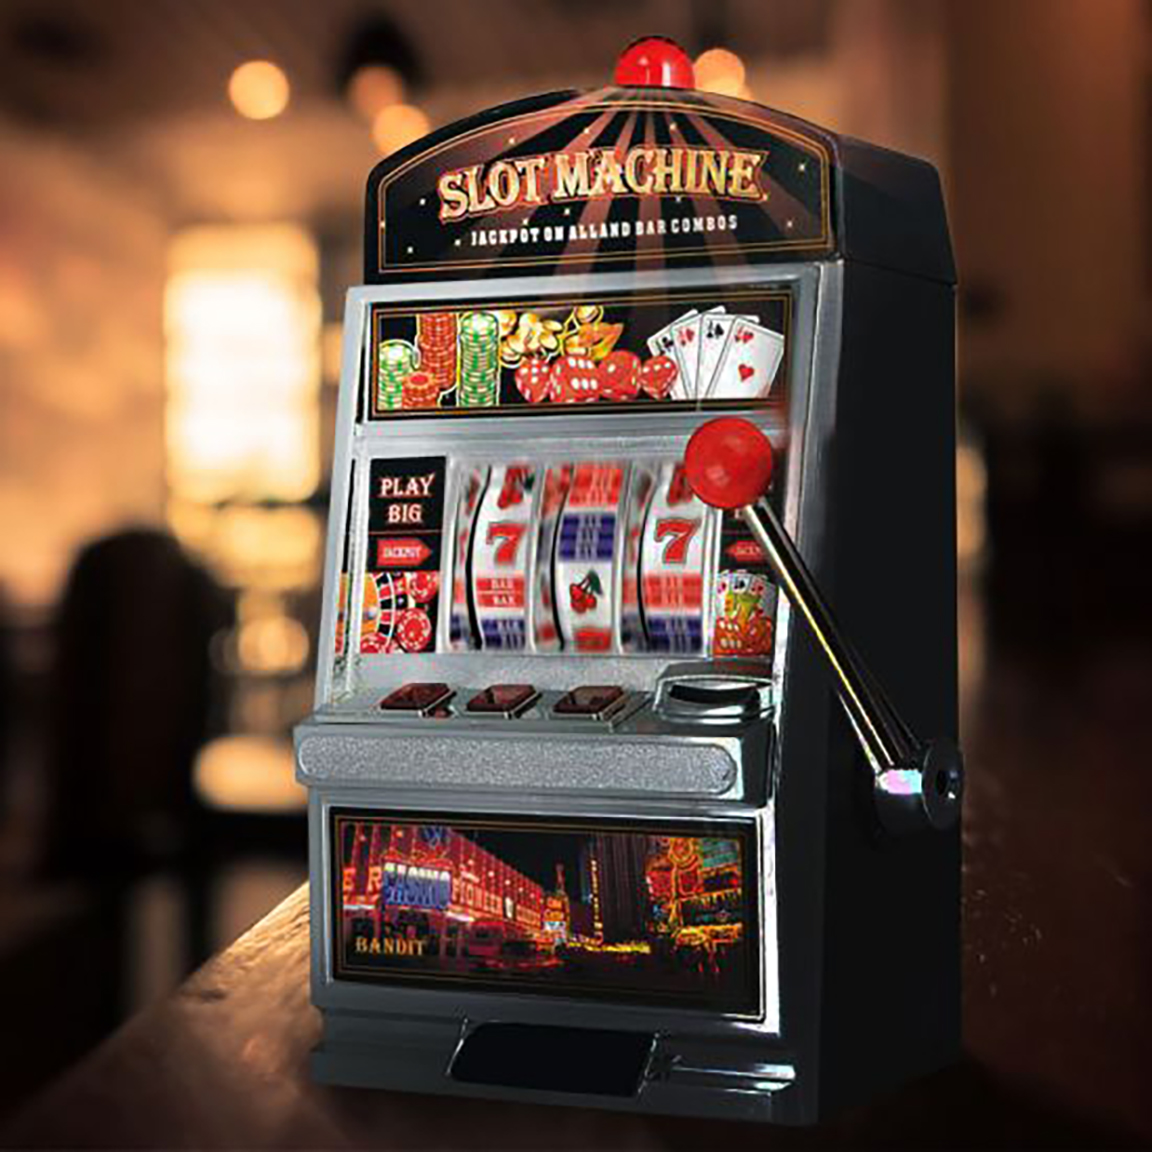 Slot machine download giochi 2009 da scaricare